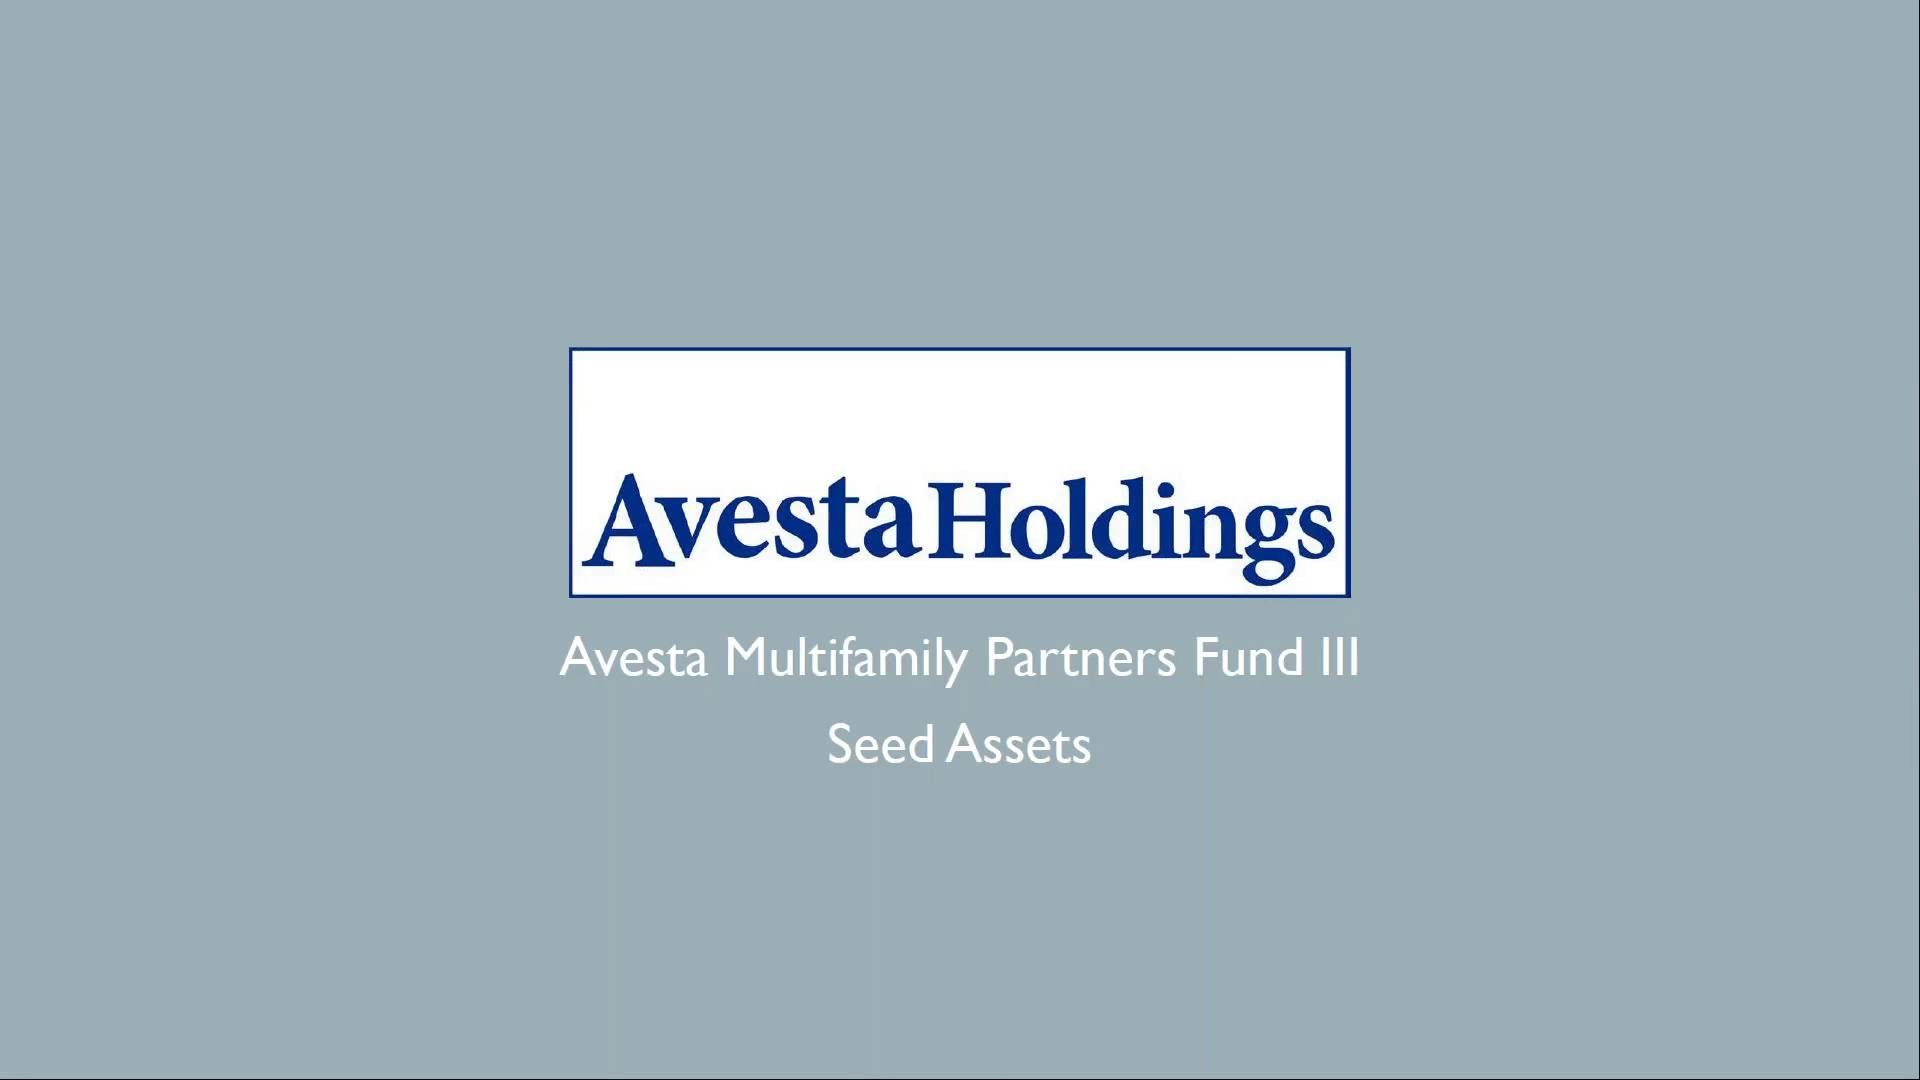 Investment Video - Avesta Multifamily Partners Fund III